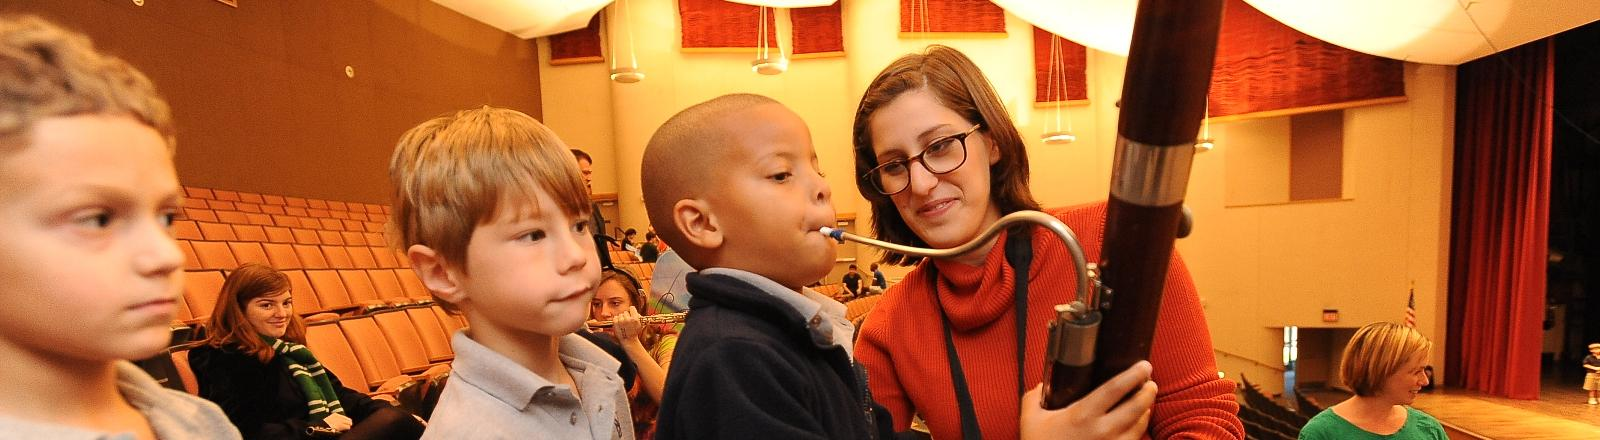 A Loyola School of Music music education student helps an elementary student play a bassoon.